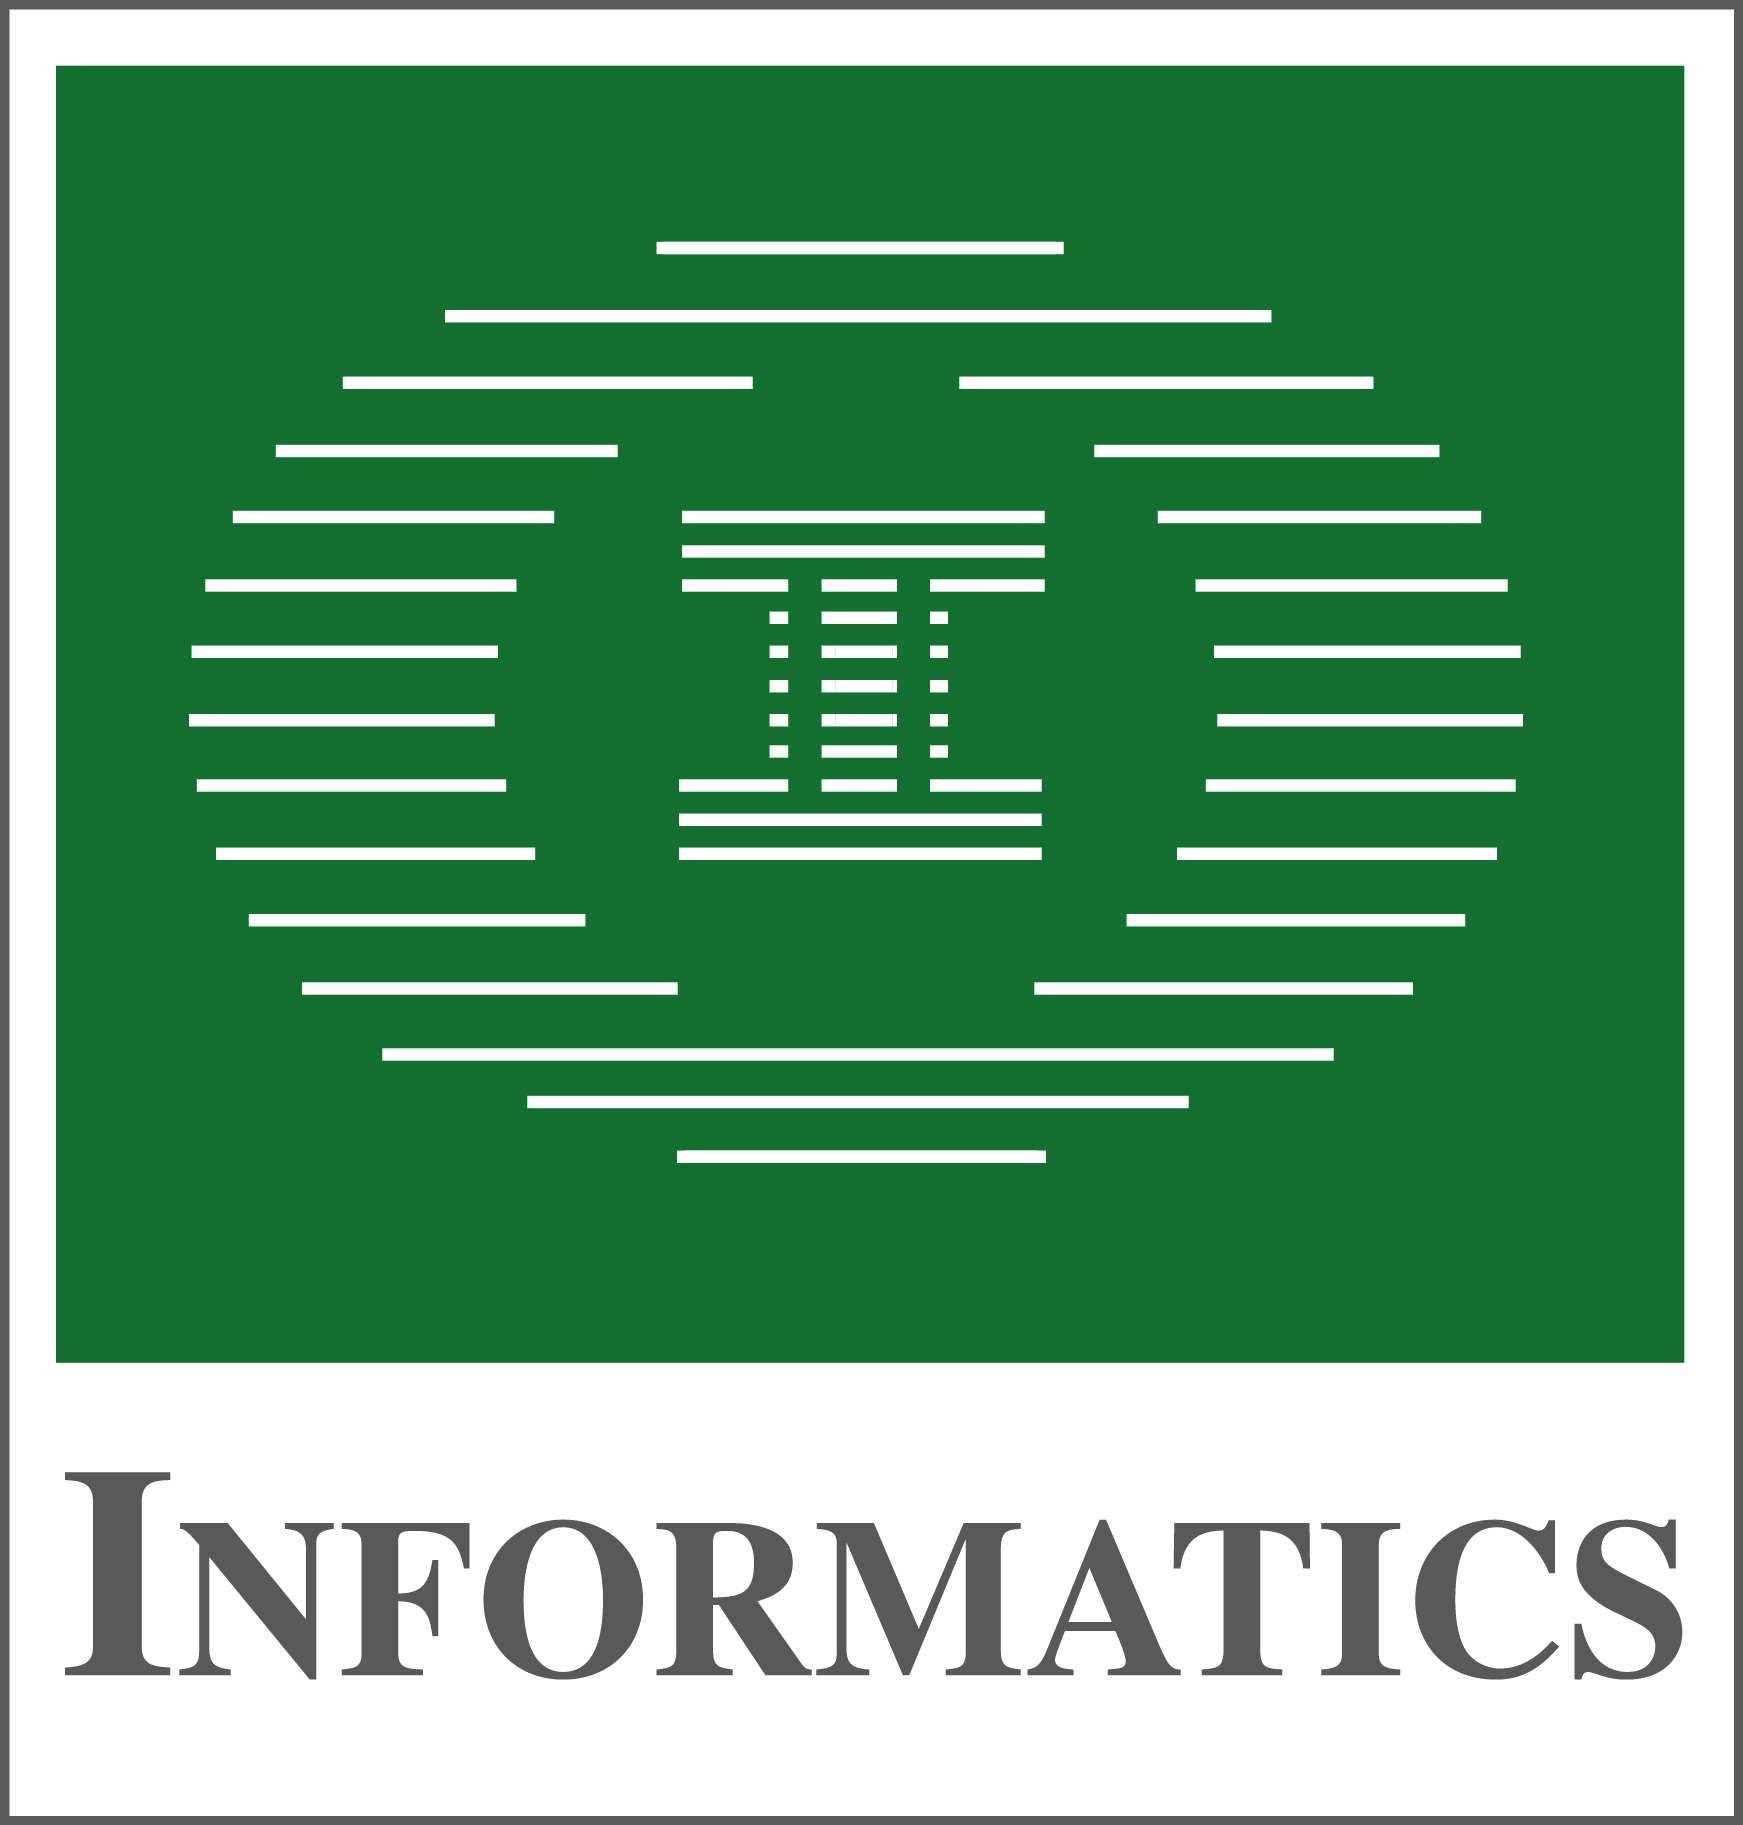 Informatics (2005) - (TX, U.S.A.) - online sale of Auto ID products